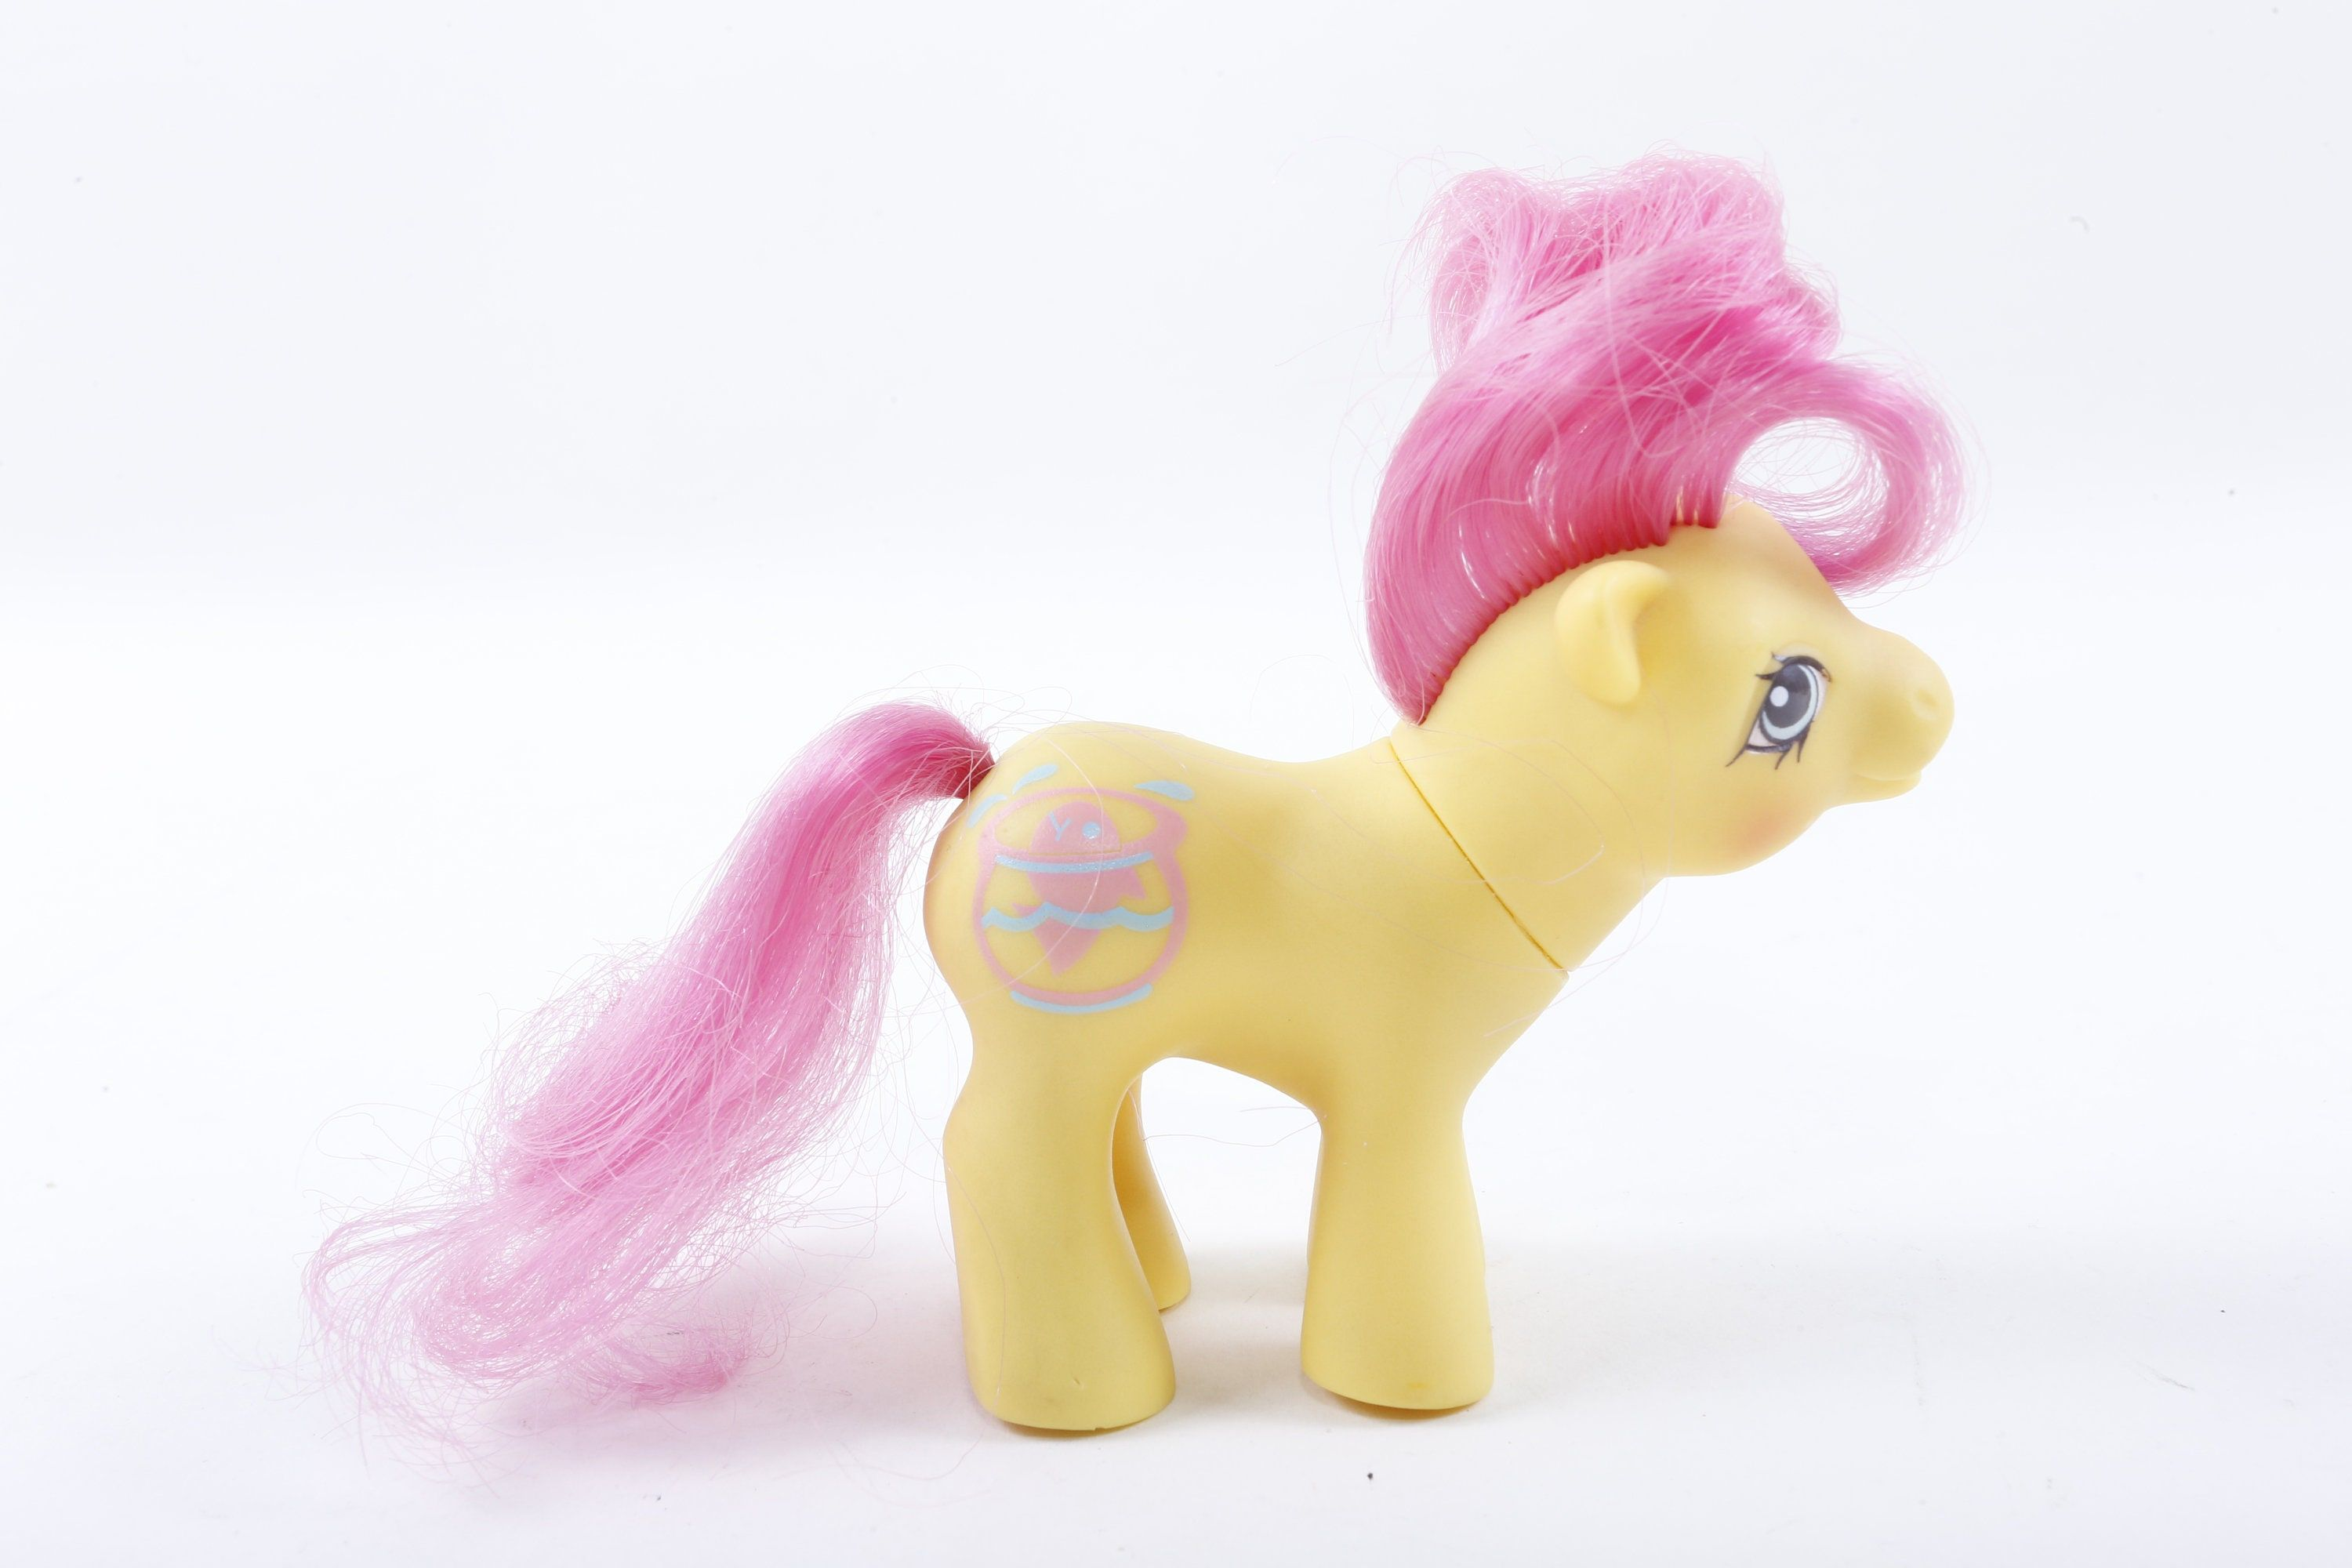 Vintage, Hasbro, My Little Pony, Baby Flicker, Yellow, Plastic, Toy, Fish in Aquarium, Pink Hair, Figure, Animal, Children, ~ 160921A Nice My Little Pony yellow toy with fish in aquarium picture. By Hasbro. Slight Smoky Smell. IMPORTANT INFO BELOW (Please Read For Fast & Helpful Answers to Common Questions) - Measurements: We try to include a ruler in each photo to show the measurement (in inches) for each item. If you can't find the measurements in the title, photos or description, go ahead